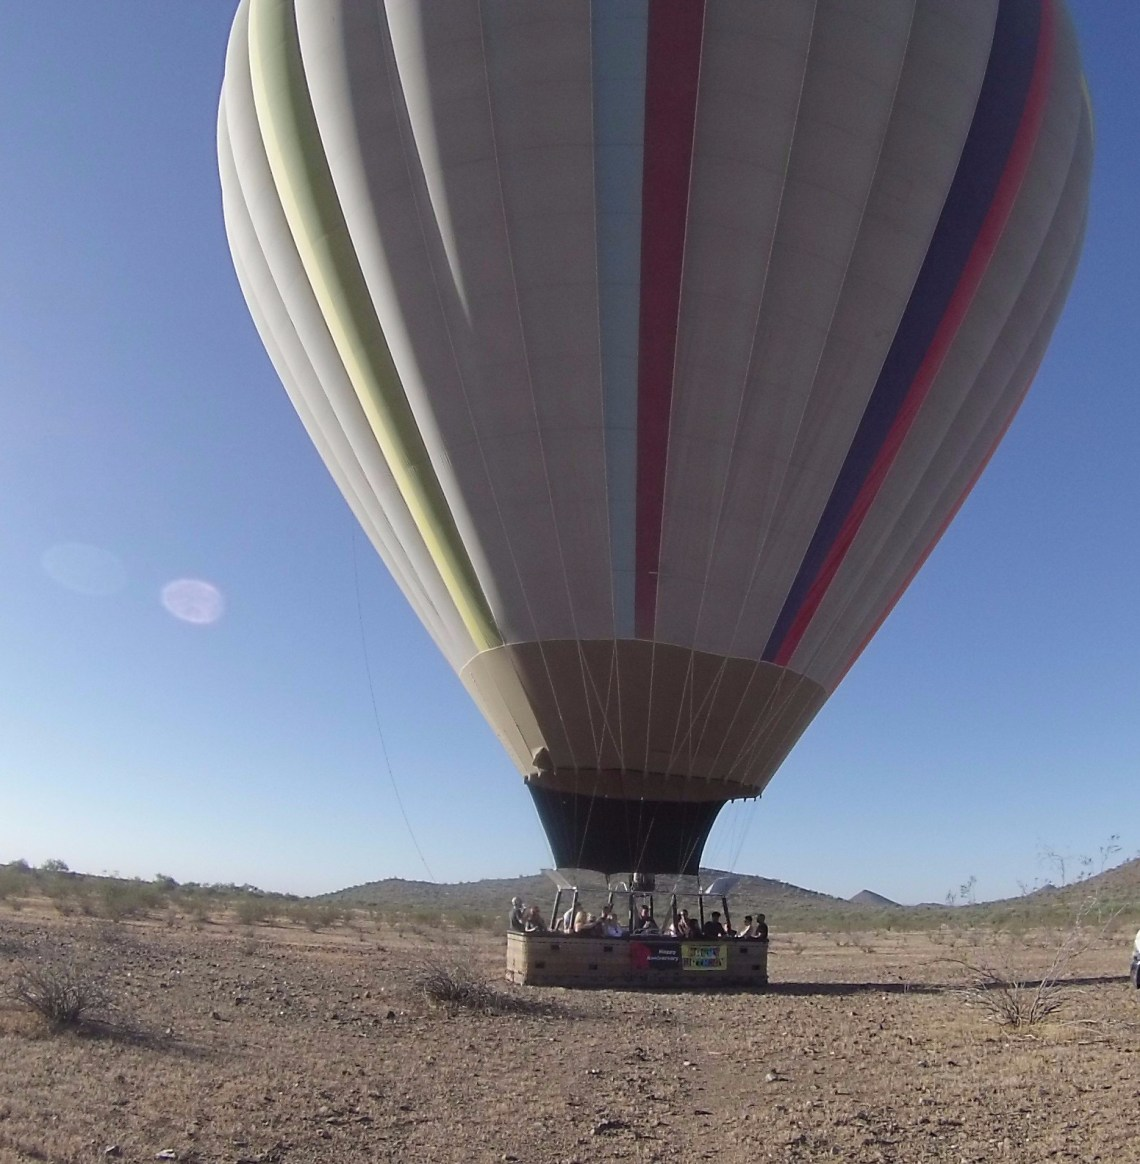 Hot air balloon resting on mostly barren desert